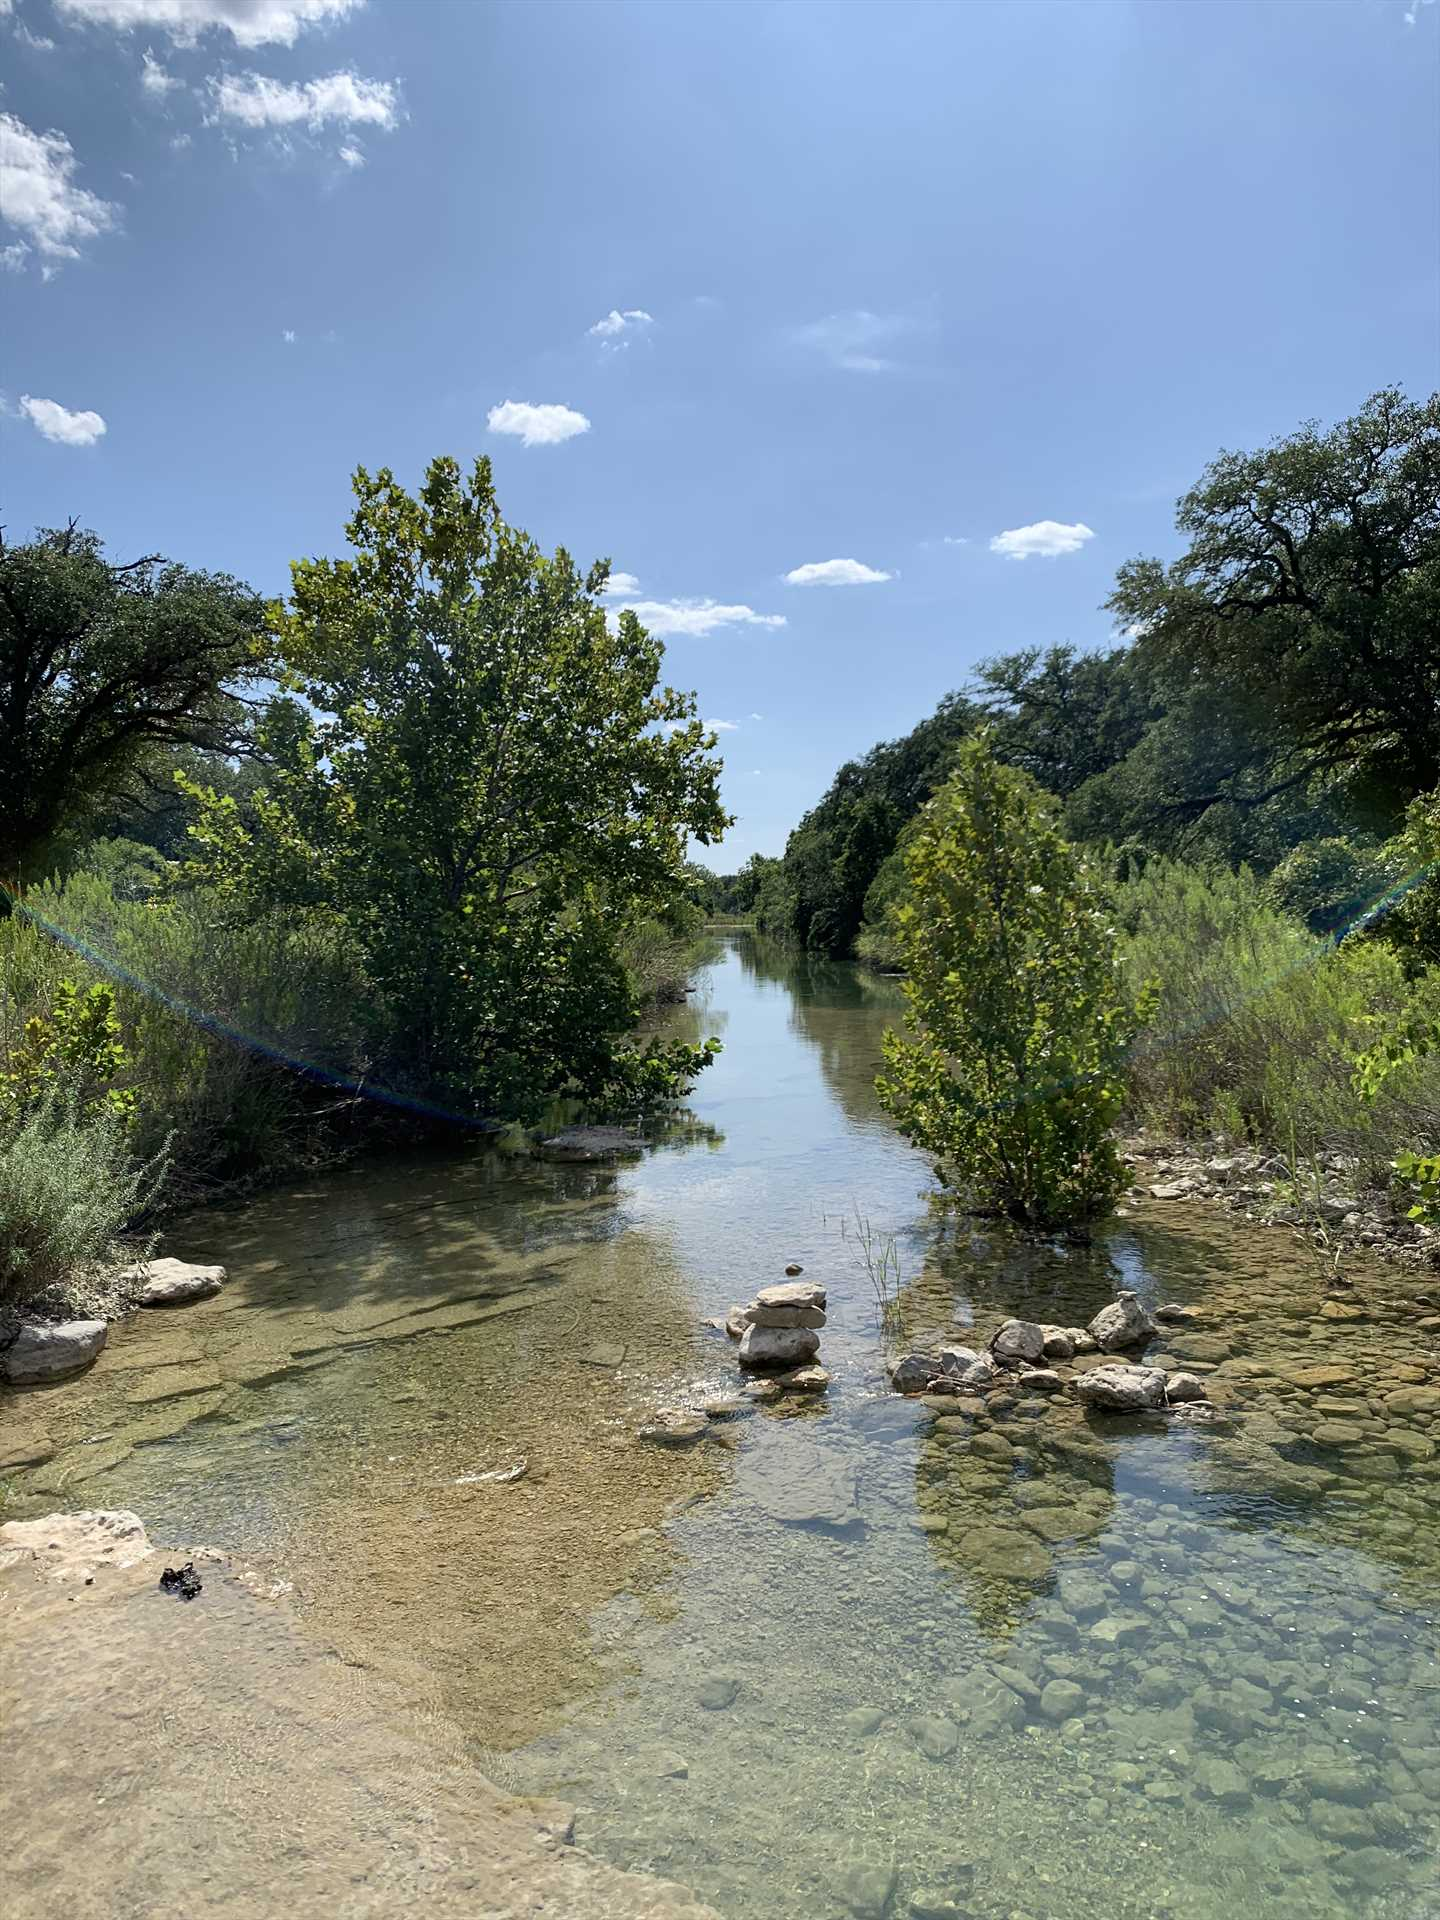 Feel free to hike the 16 acres of property here, including the peaceful banks of a bubbling creek.